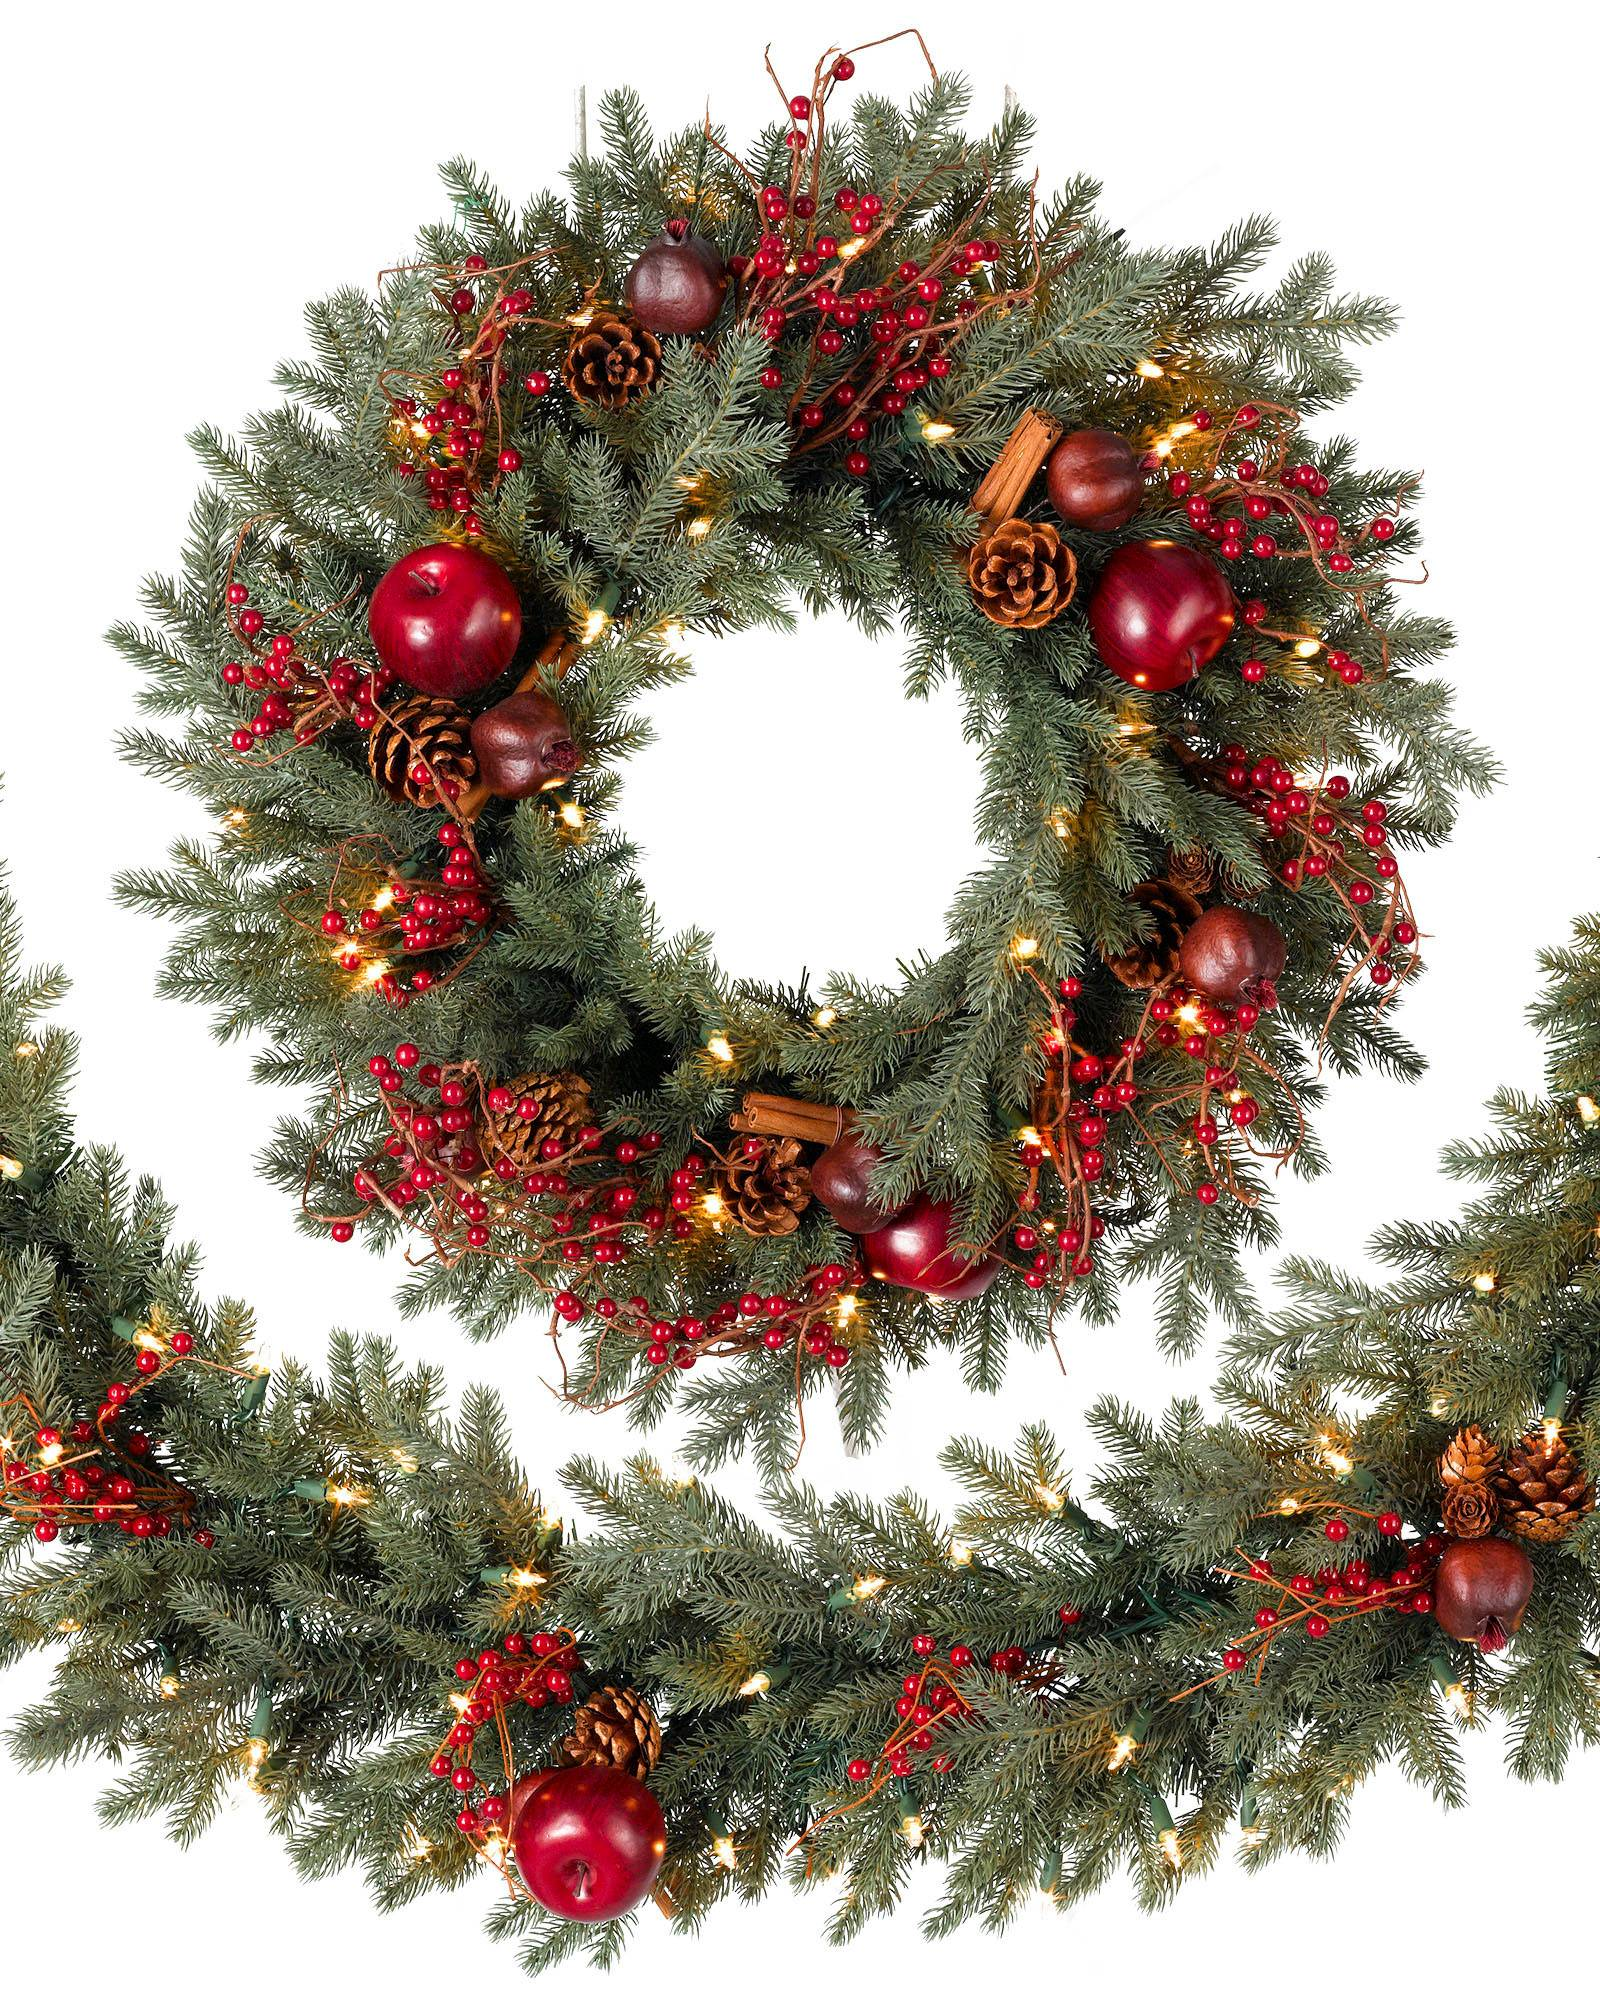 Image Result For Christmas Poinsettia Decorations Clearance